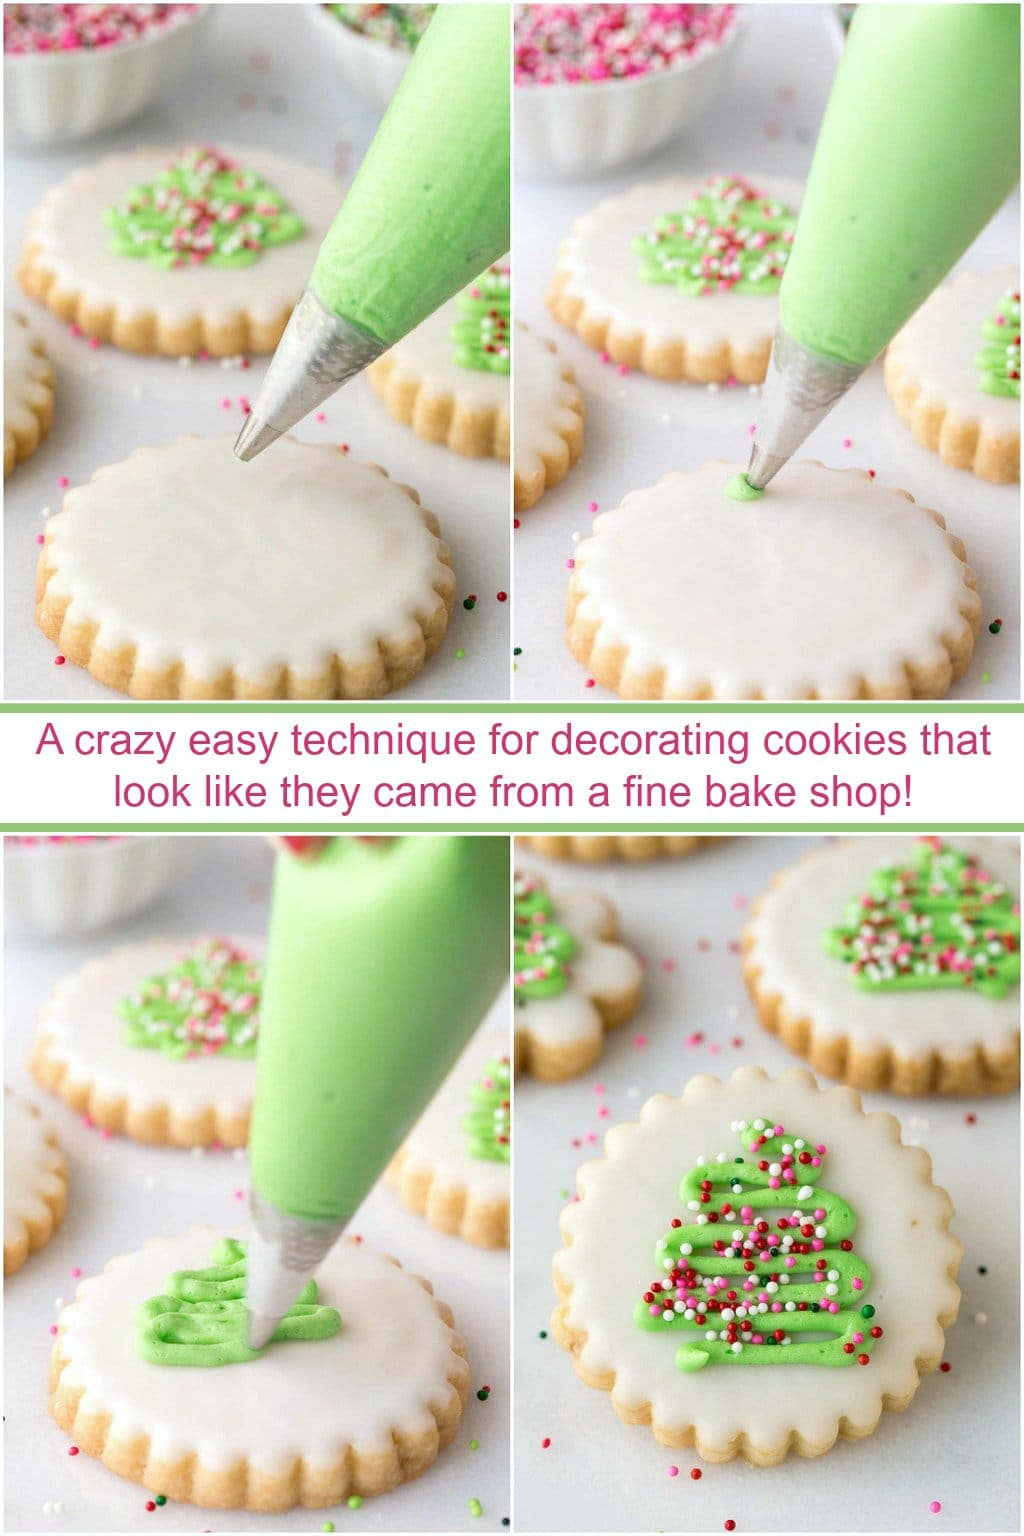 With a super simple decorating technique, these fun, festive and super delicious Christmas Shortbread Cookies look like they came from a fine baking shop! #easychristmascookies, #christmasshortbreadcookies, #prettychristmascookies